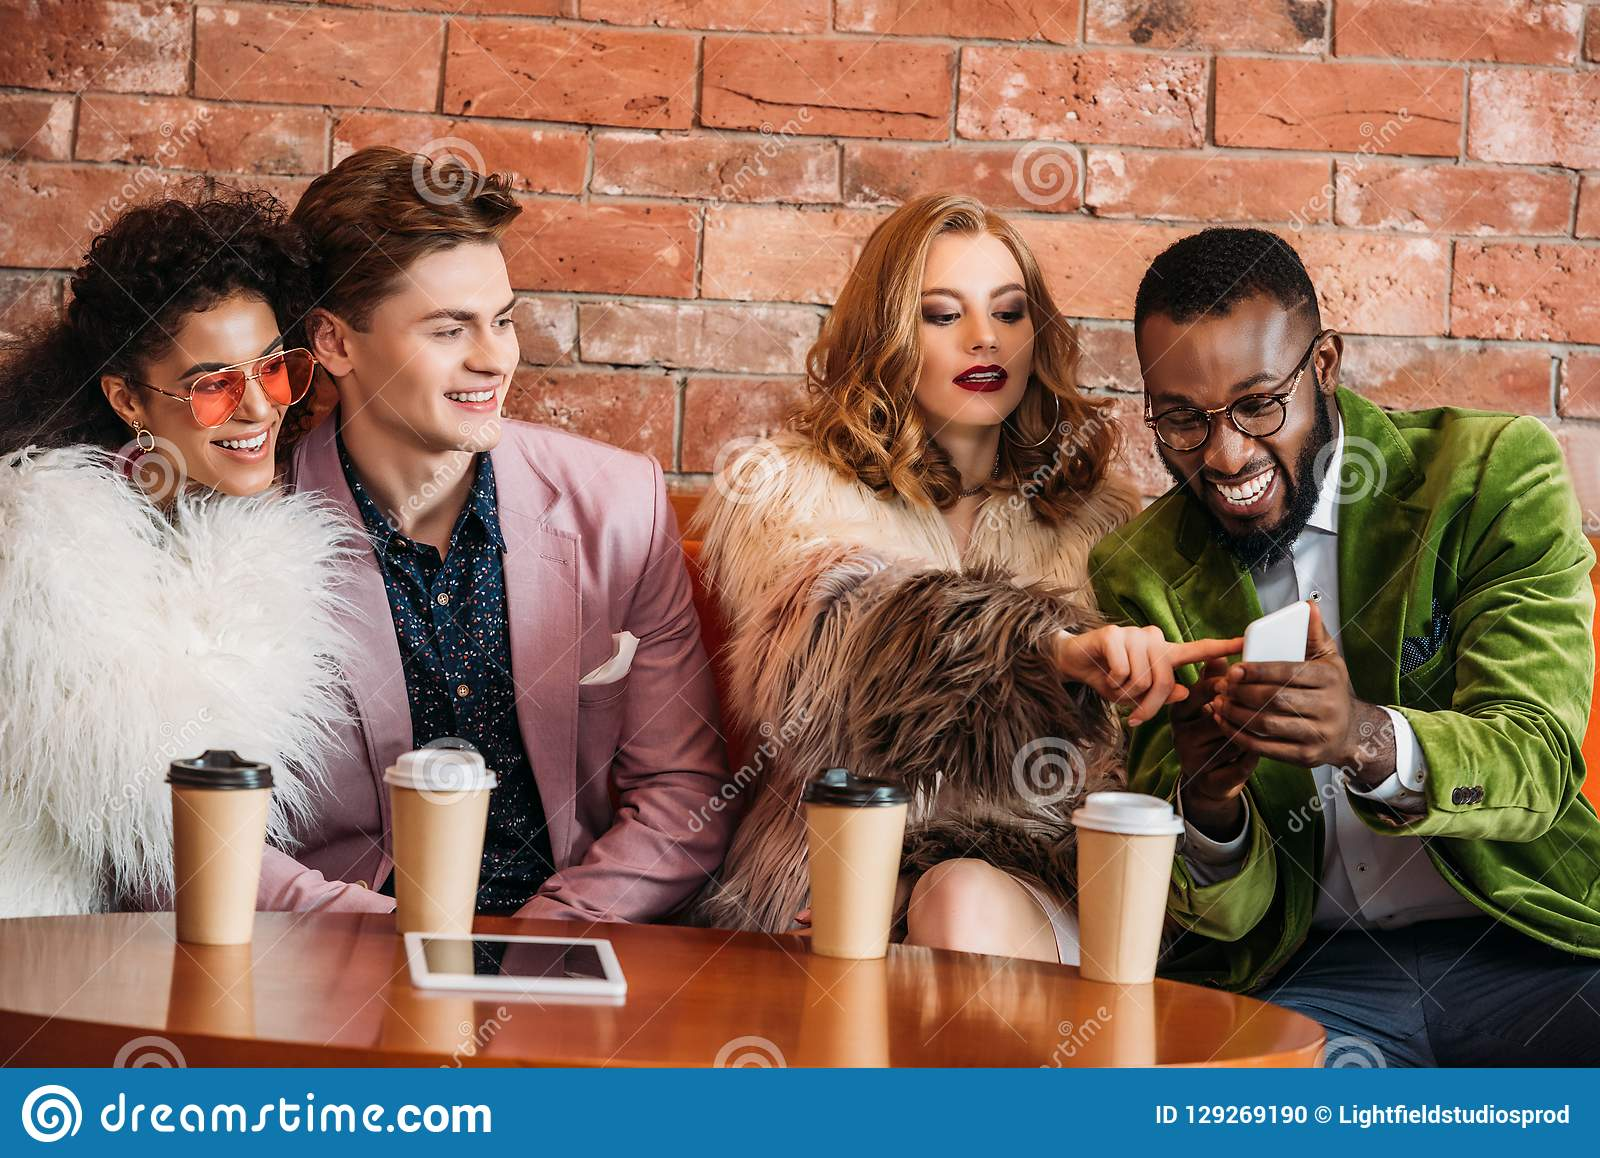 smiling fashionable multiethnic young people using smartphone while